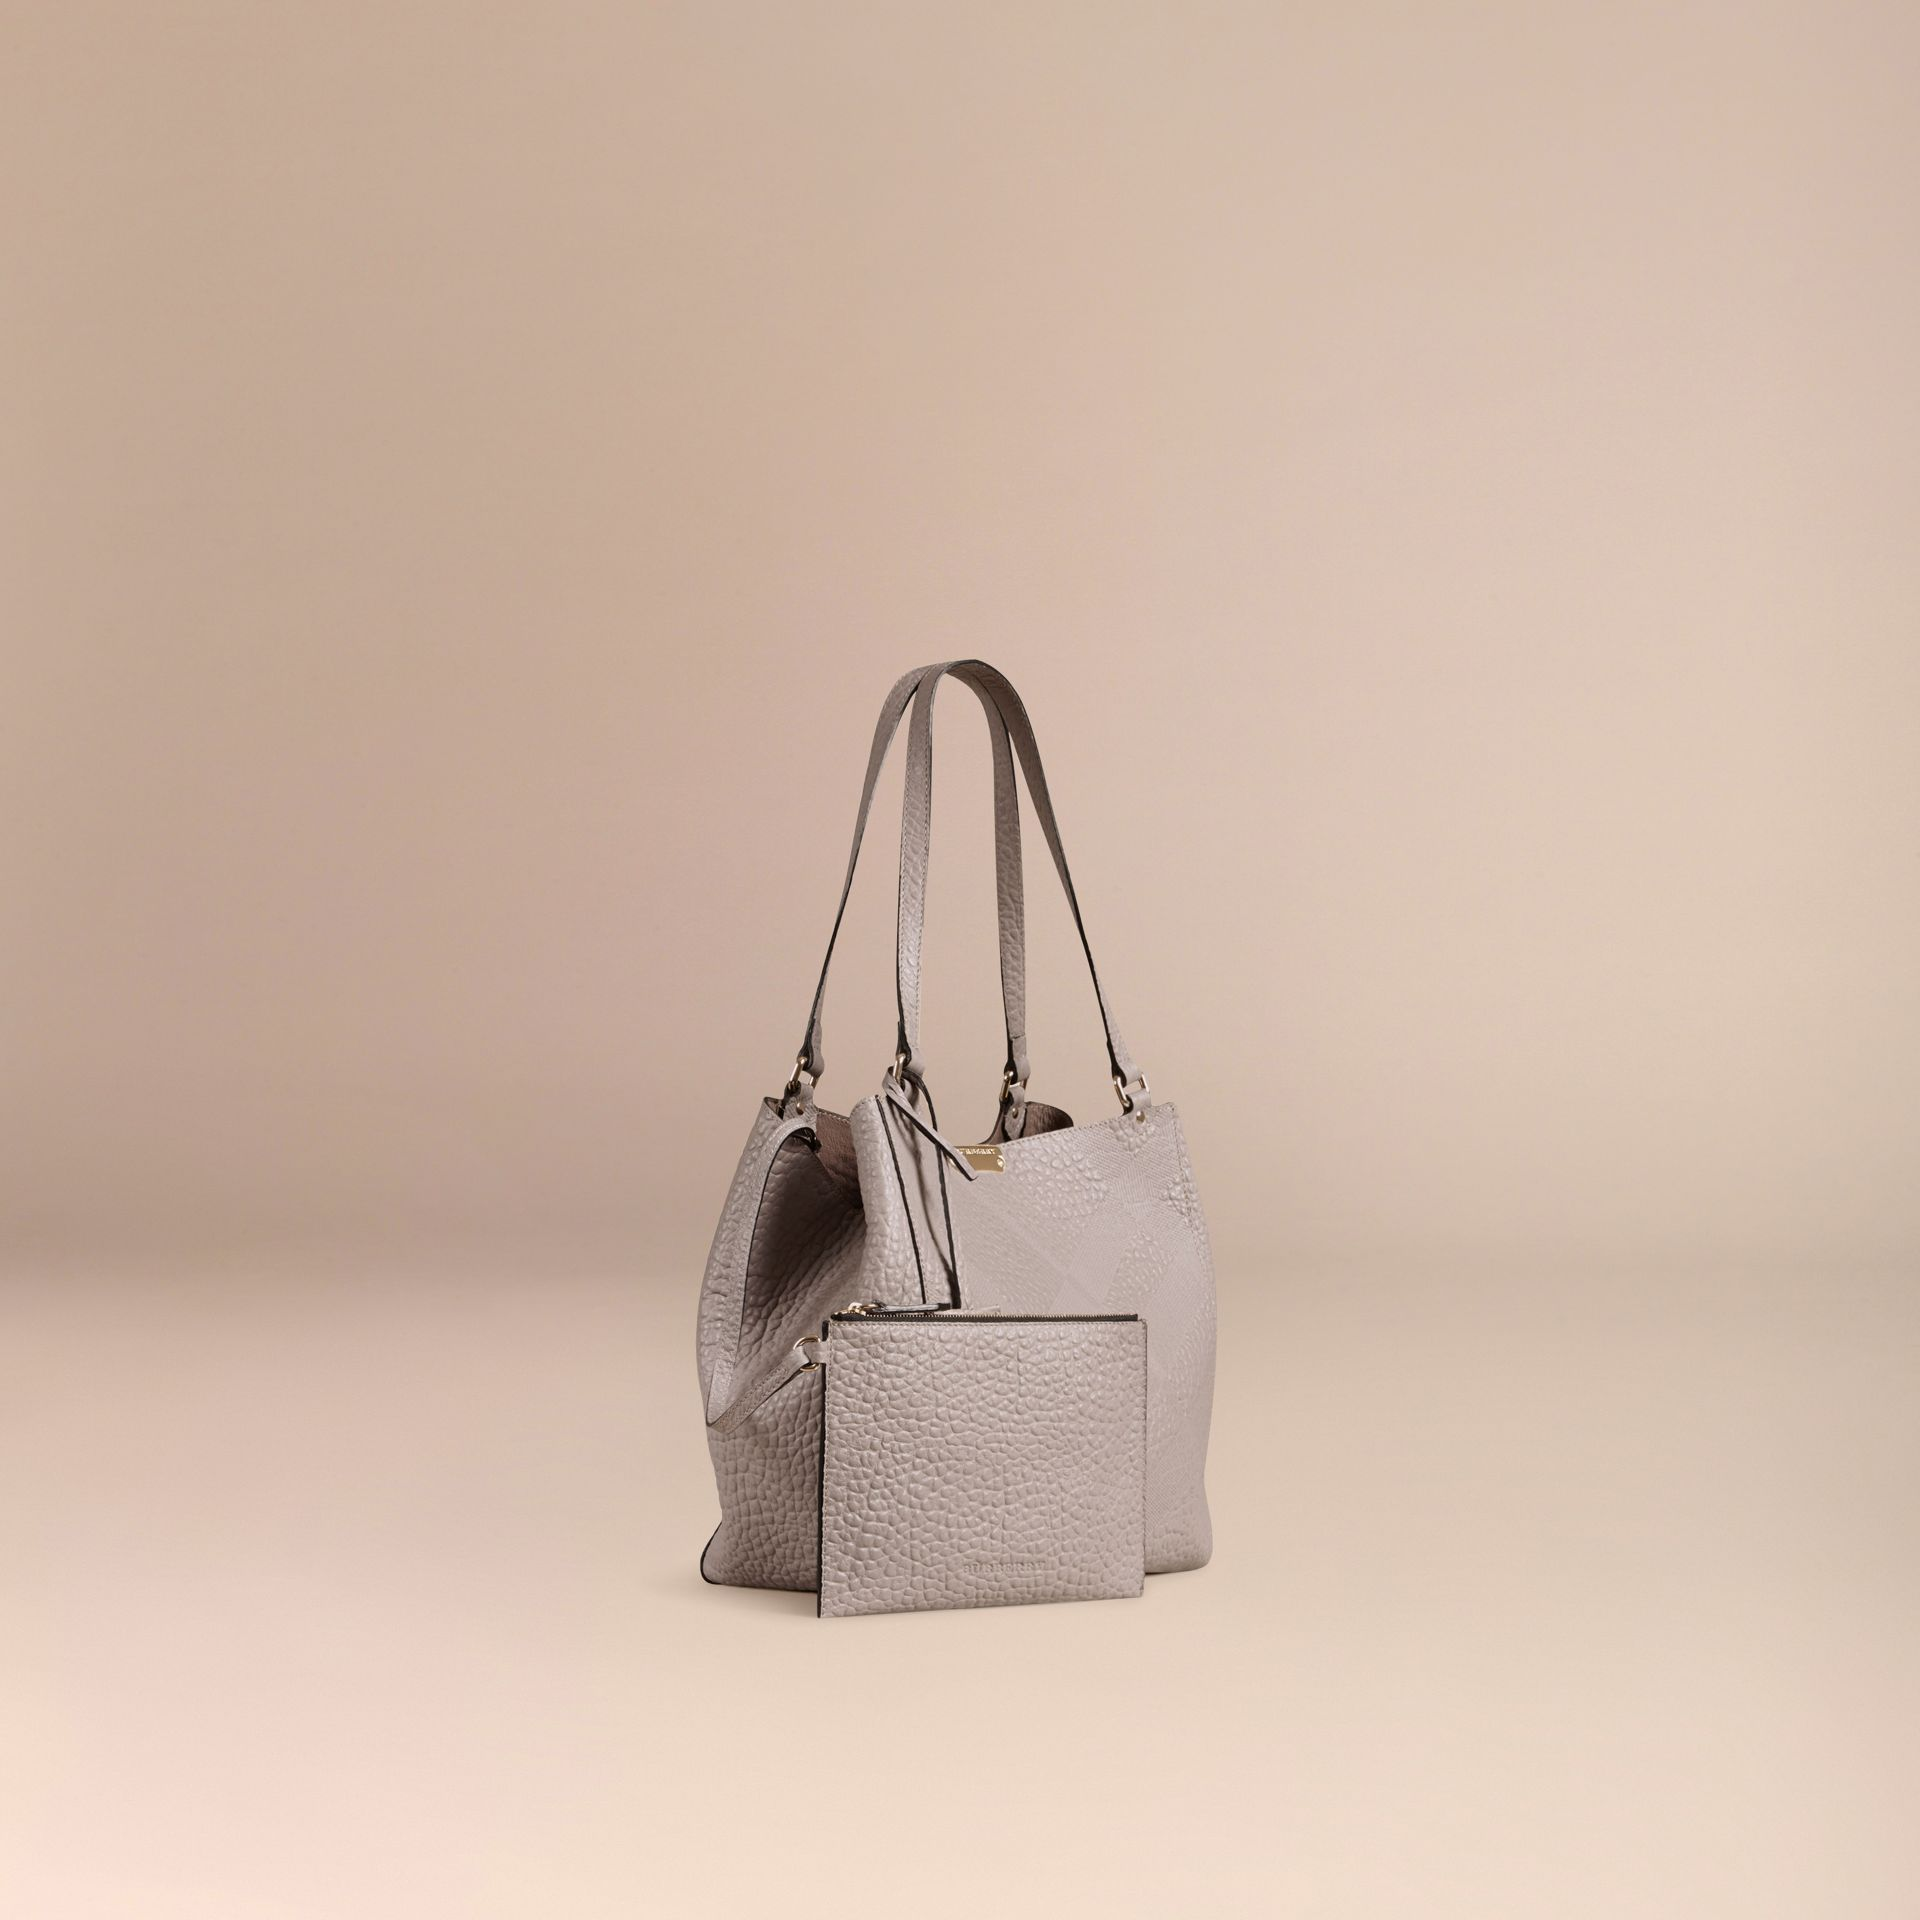 Gris pâle Petit sac The Canter en cuir avec motif check en relief Gris Pâle - photo de la galerie 7